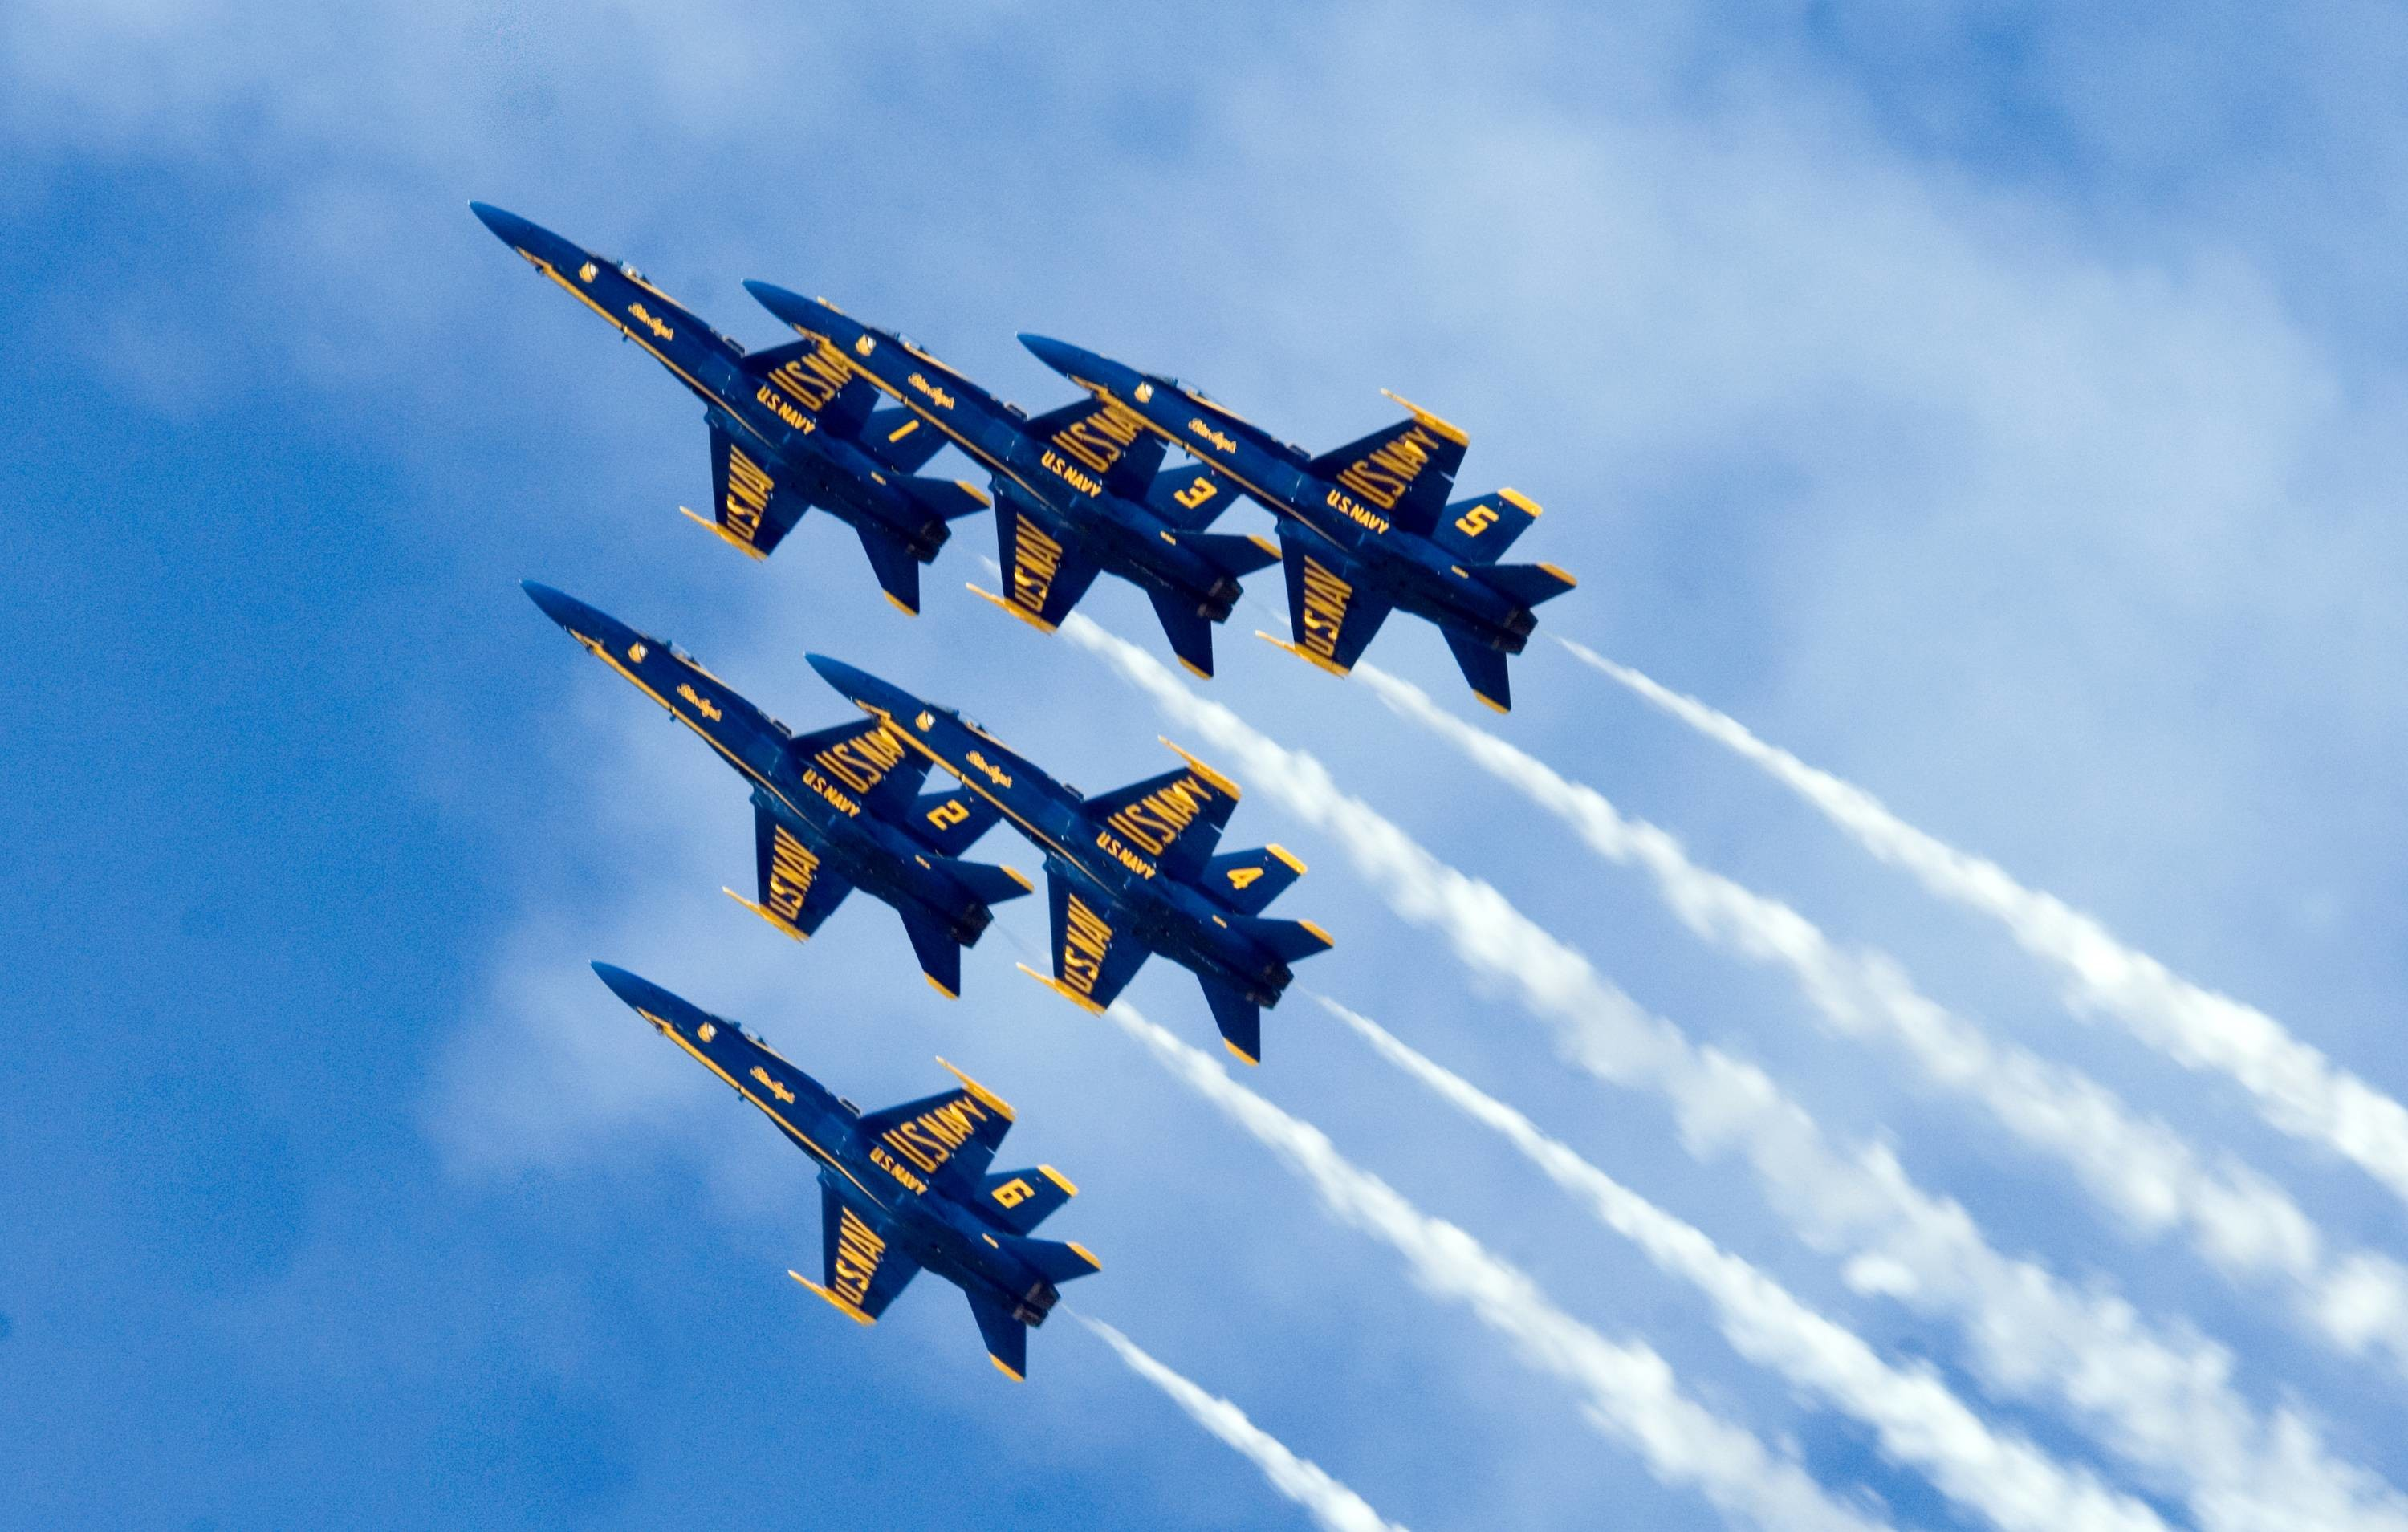 3000x1909 Blue Angels Wallpapers and Background